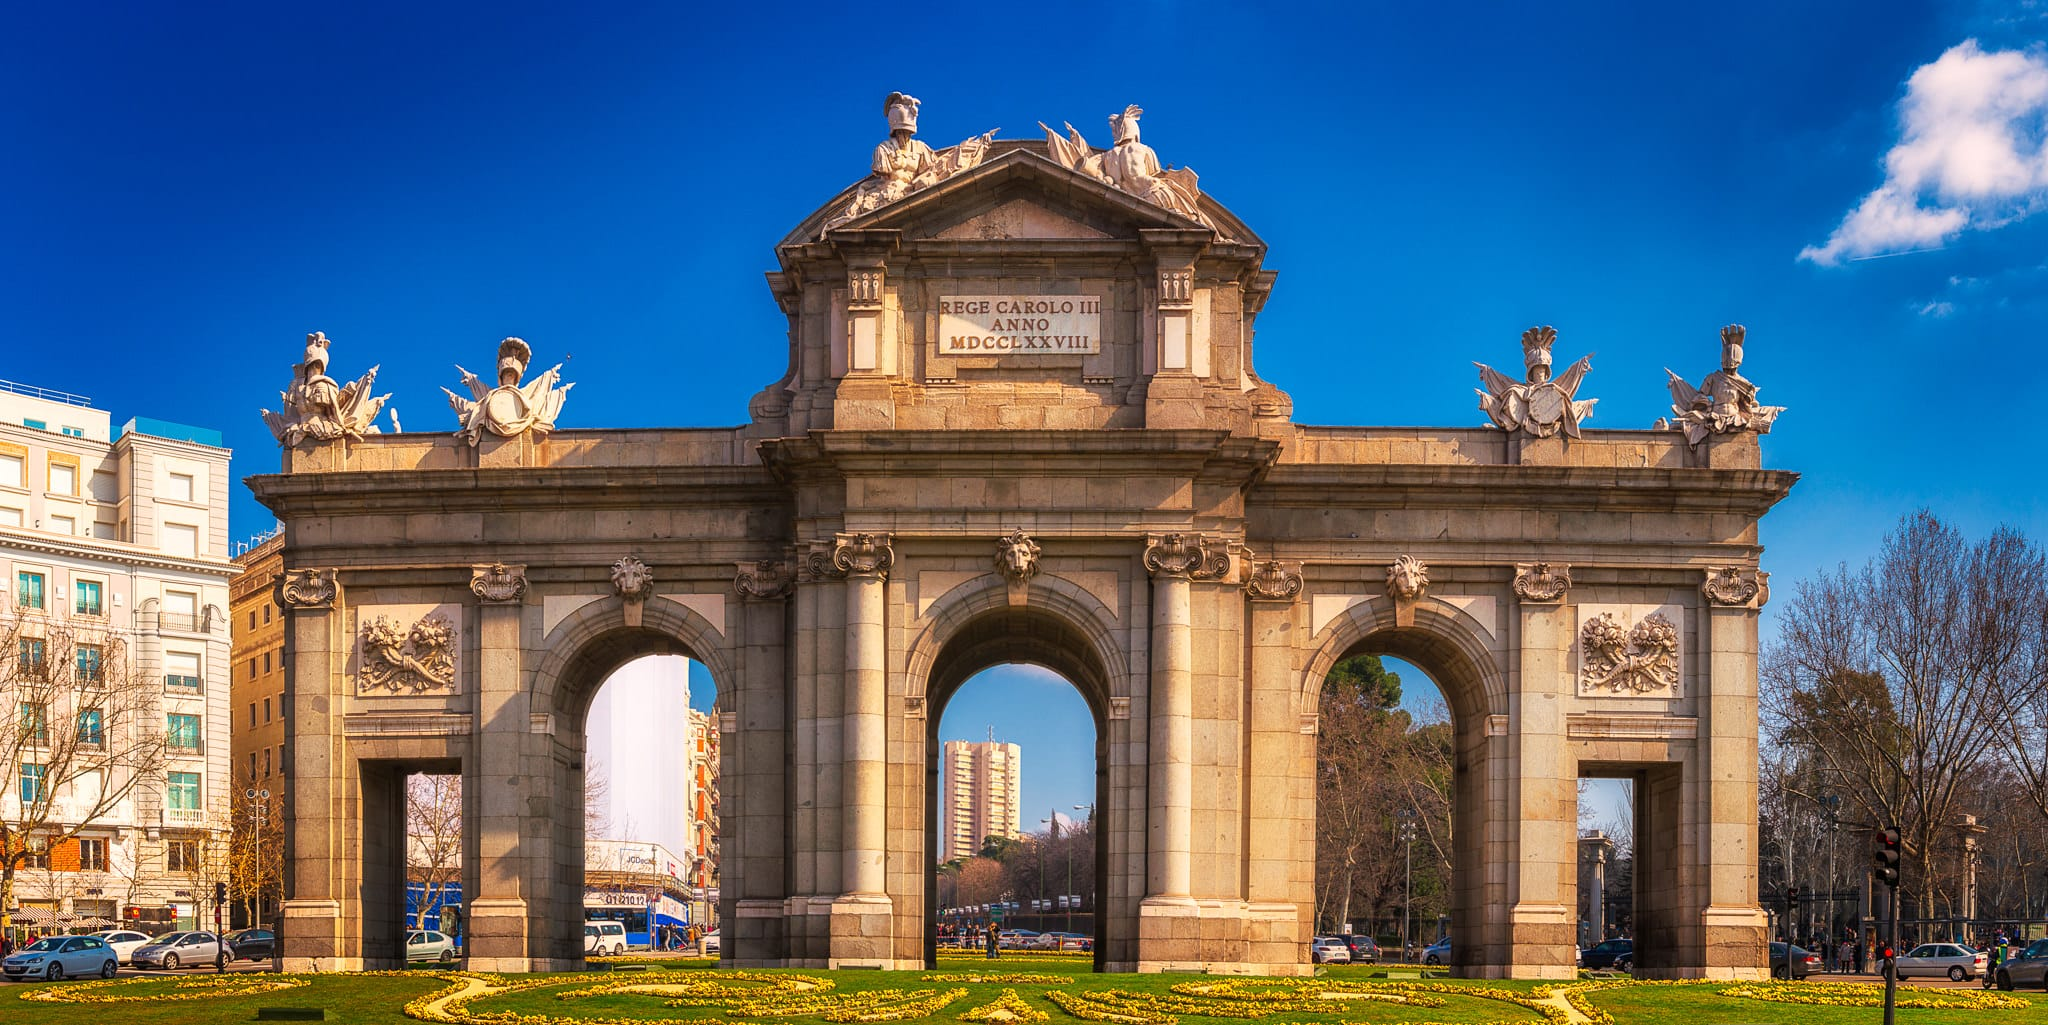 Puerta de Alcalá Madrid, Spain with a blue sky as background.